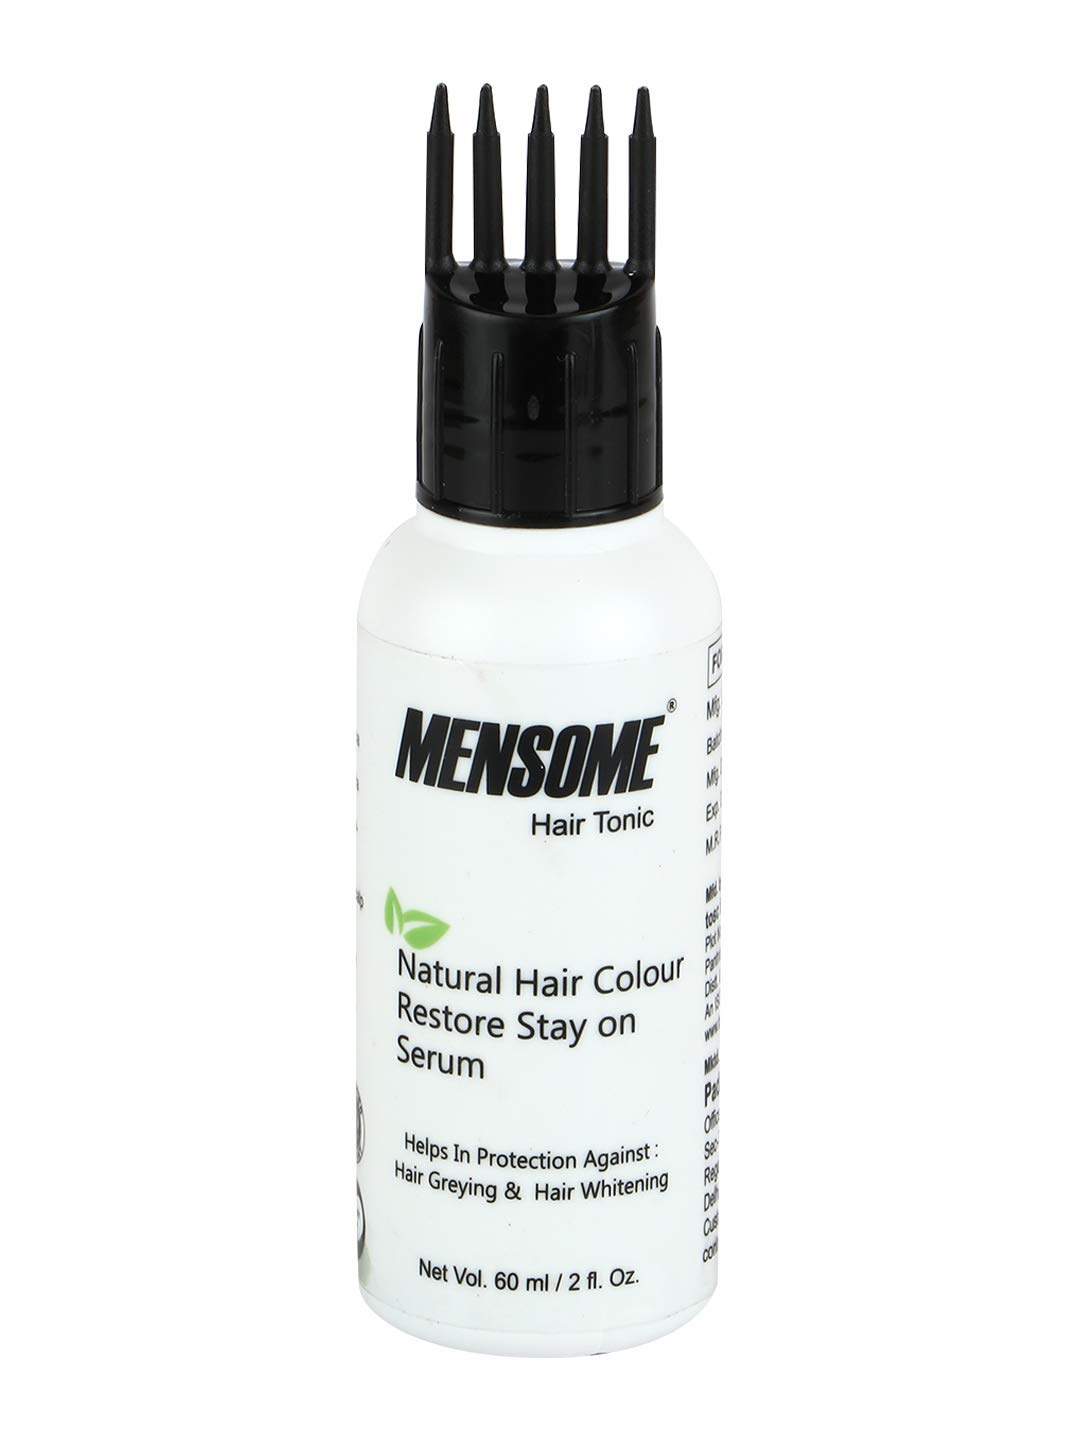 MENSOME Natural Hair Colour Restore Serum Helps in Fighting Hair Greying And Hair Whitening Problem in 60 Ml